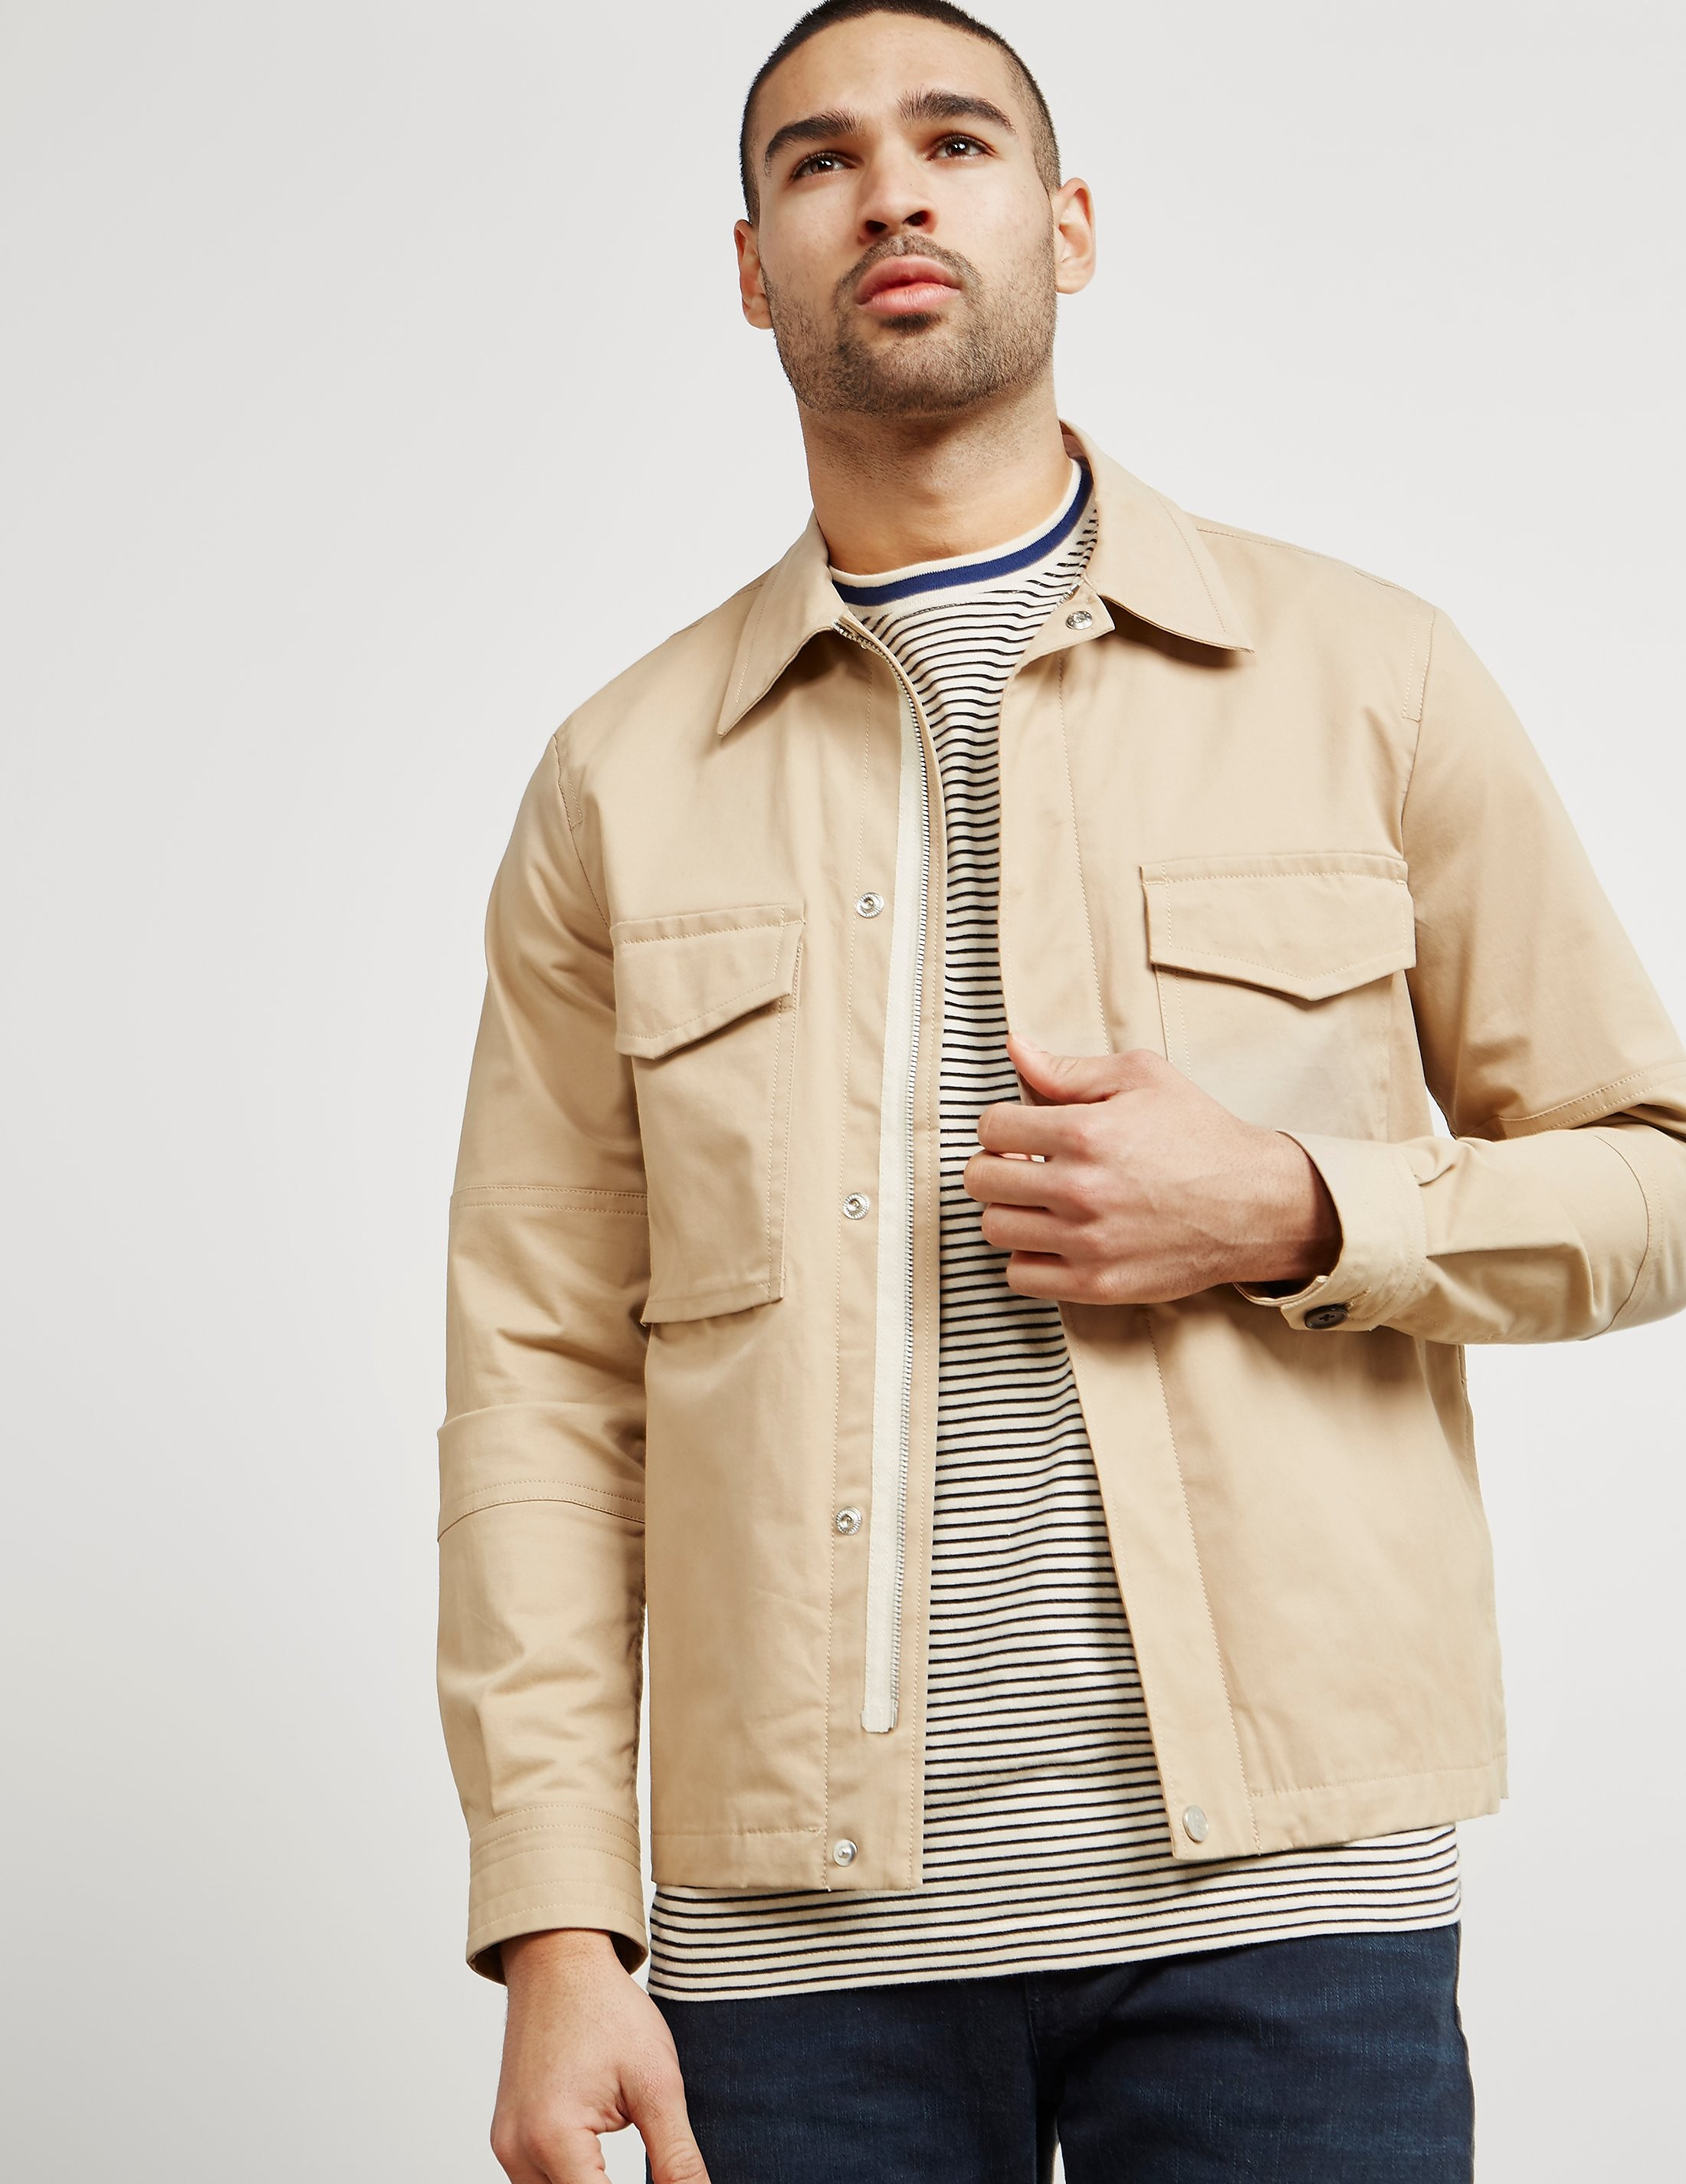 Paul Smith Military Shirt Jacket